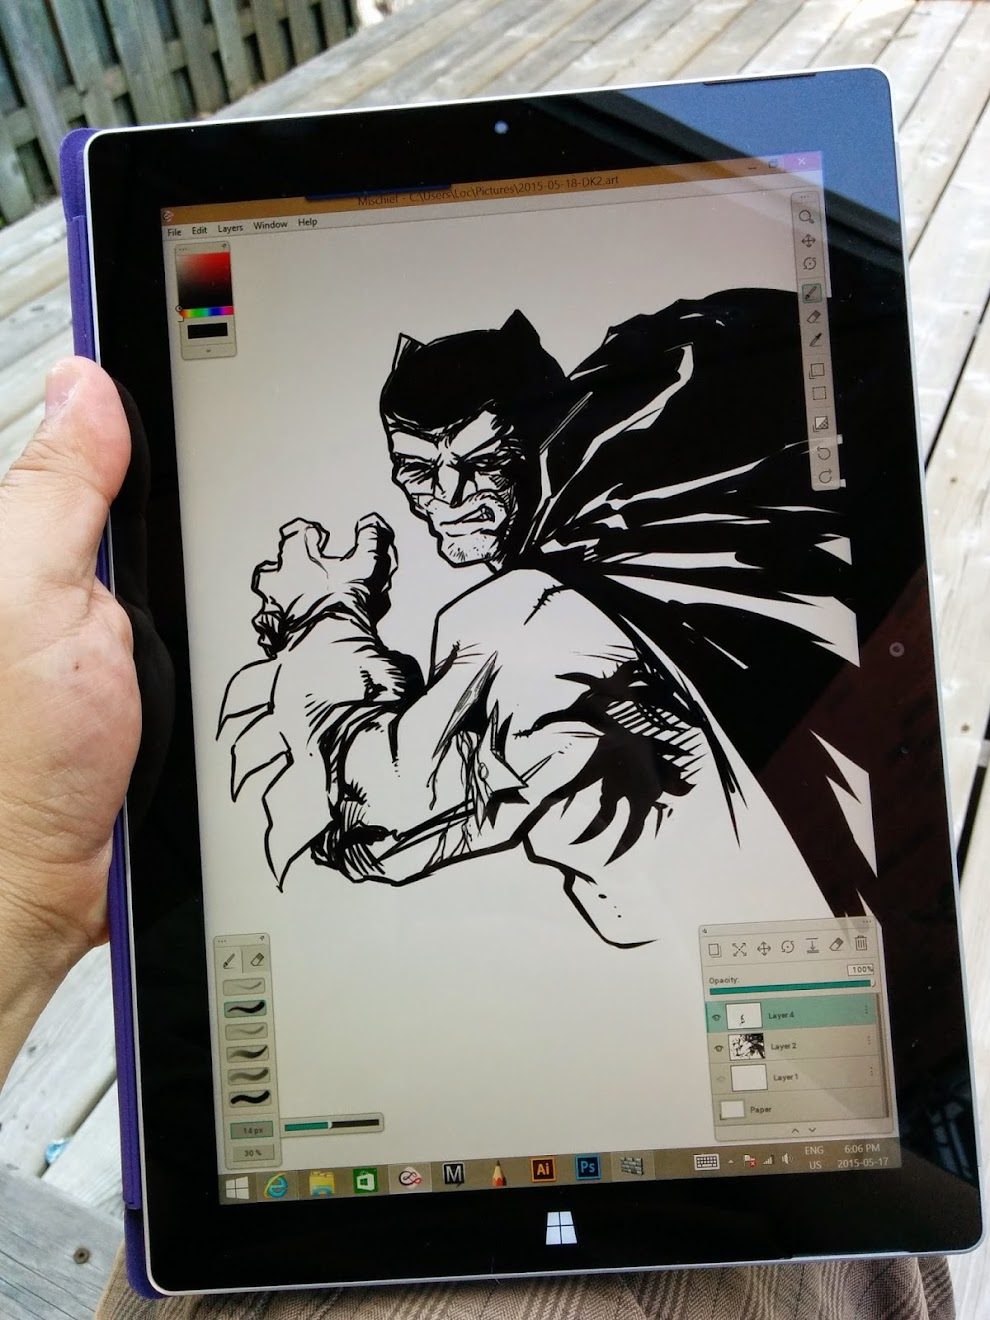 Best drawing apps for surface pro - Sitting Outdoor Under A Patio Shade While Drawing And The Screen At 70 80 Brightness Note The Screen Can Be Very Reflective Outdoors